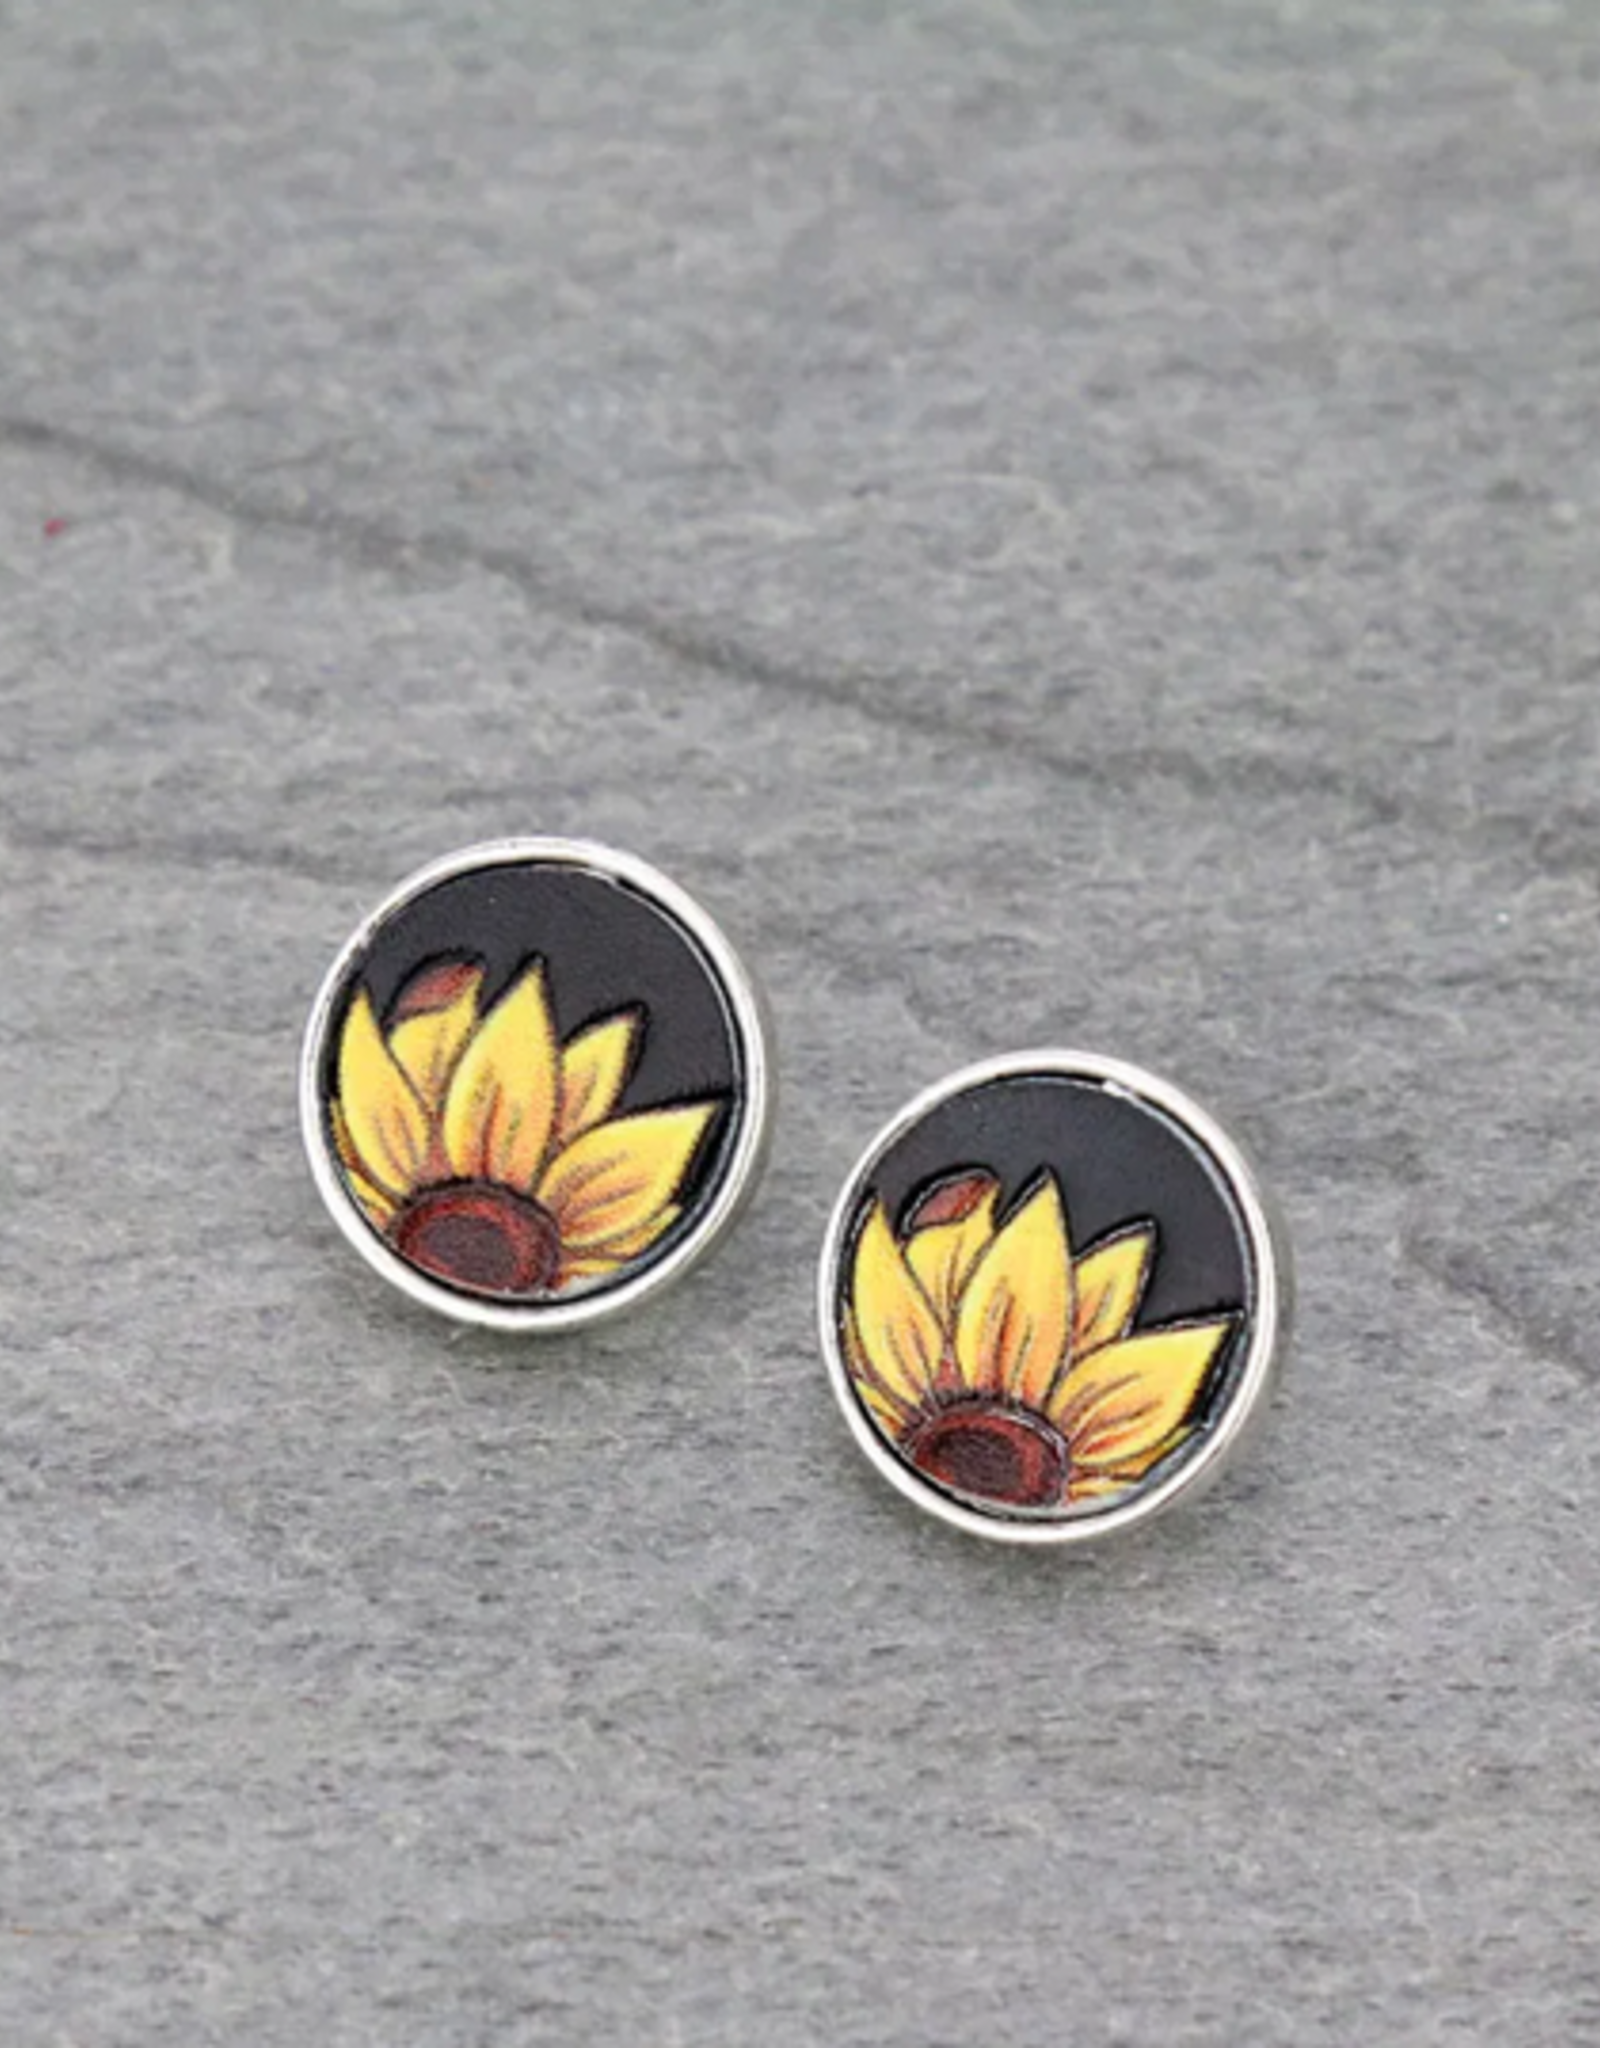 EARRINGS SUNFLOWER/BLACK LEATHER STUD